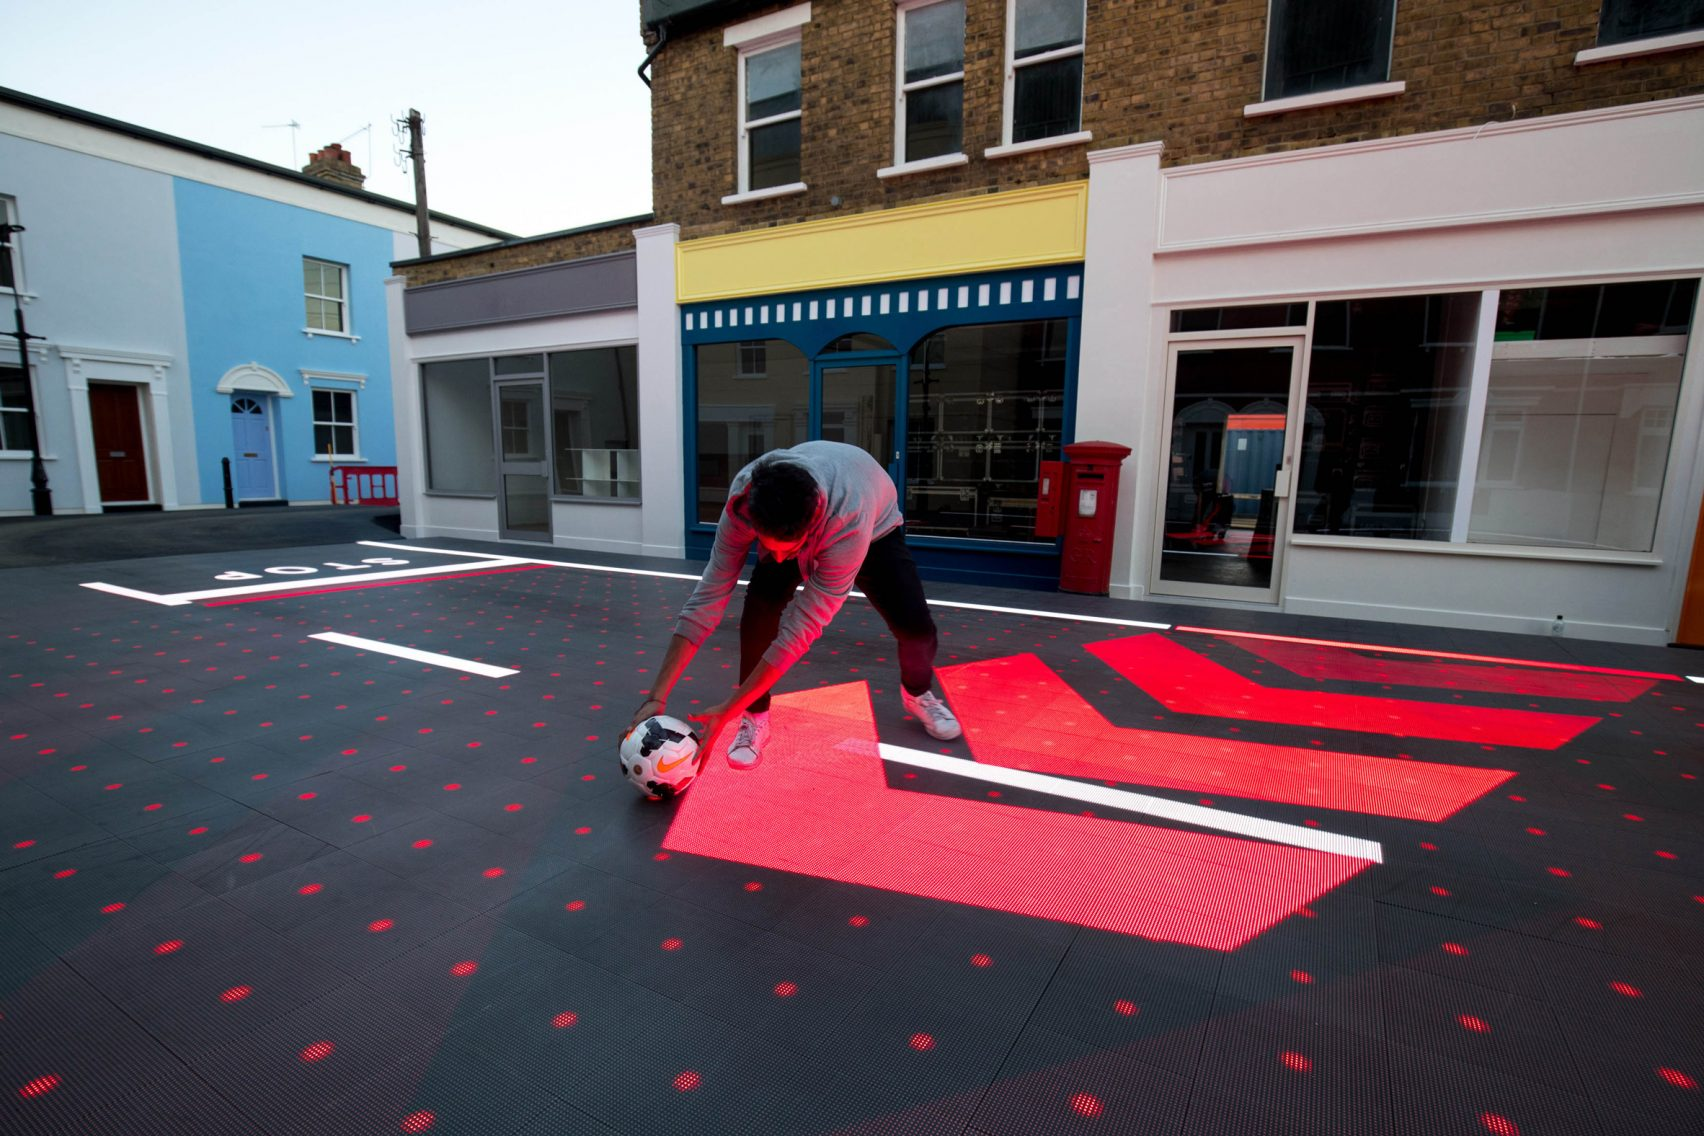 Interactive Crossings Dynamic Street Leds Respond To